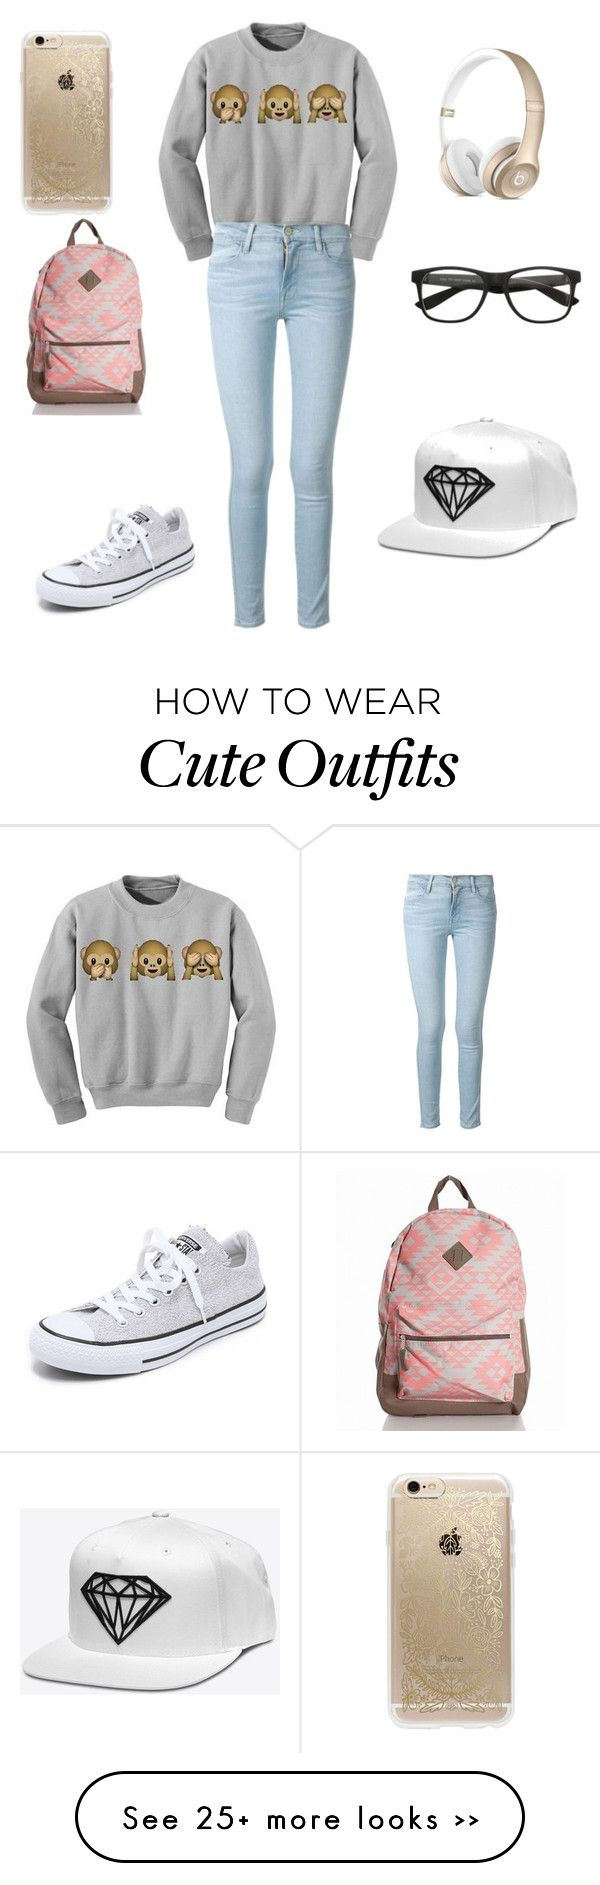 """""""Nerdy girl outfit"""" by mjbouldt on Polyvore featuring Frame Denim, Converse and Rifle Paper Co"""